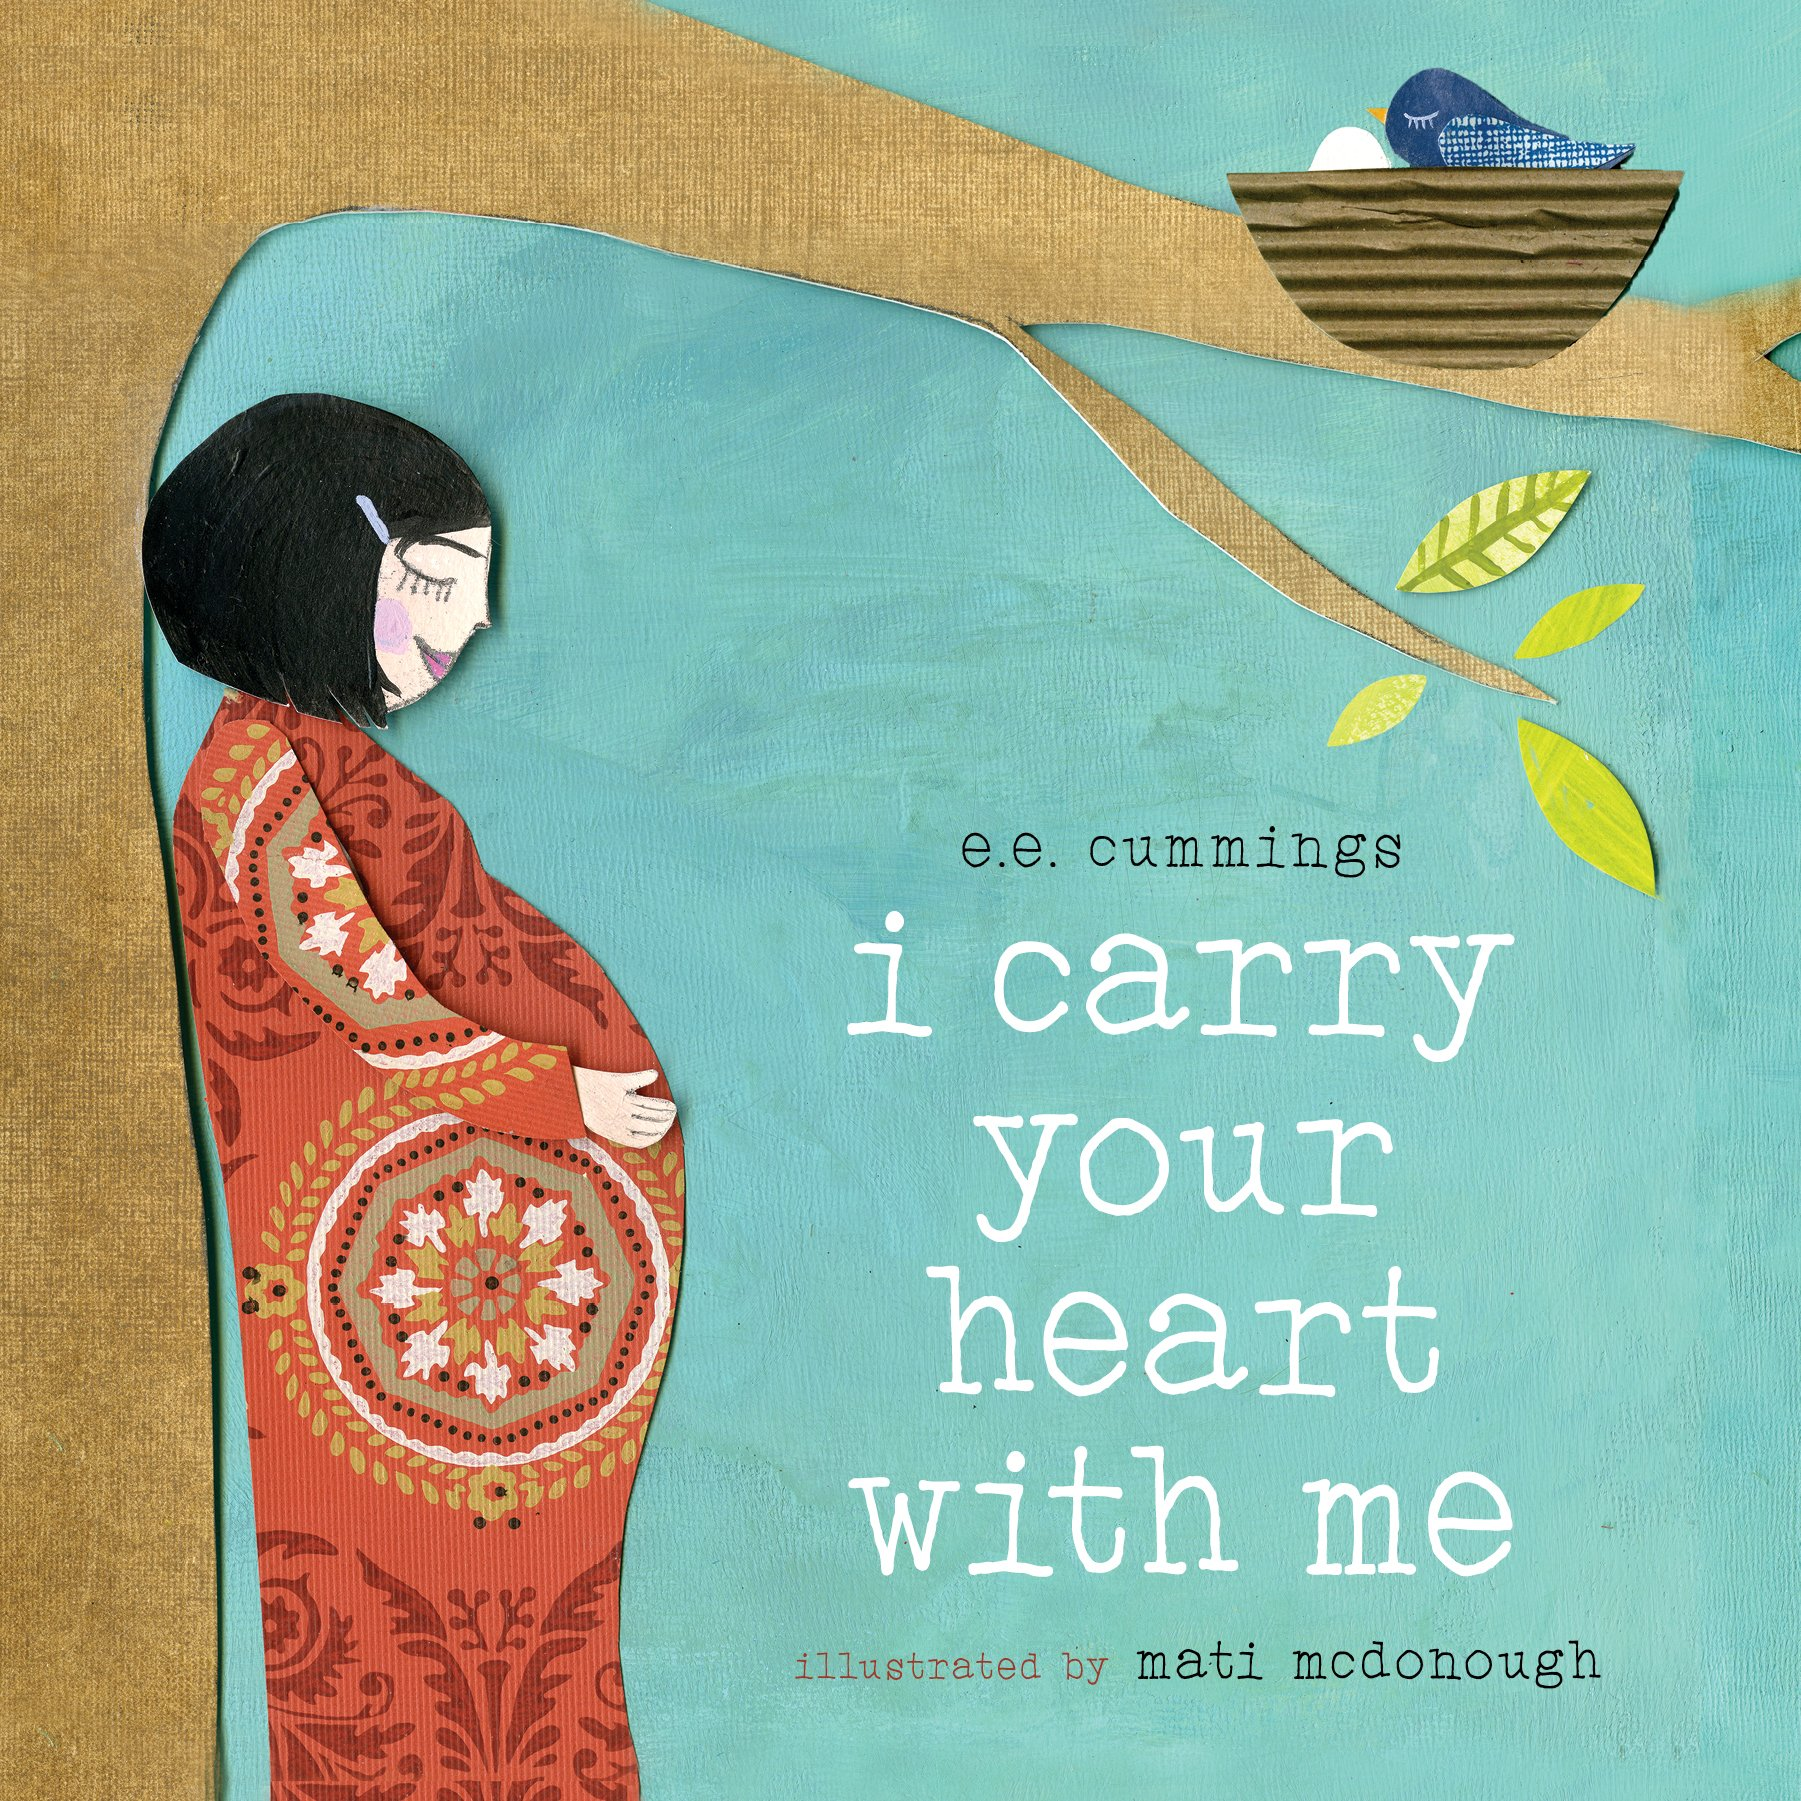 i carry you in my heart poem meaning